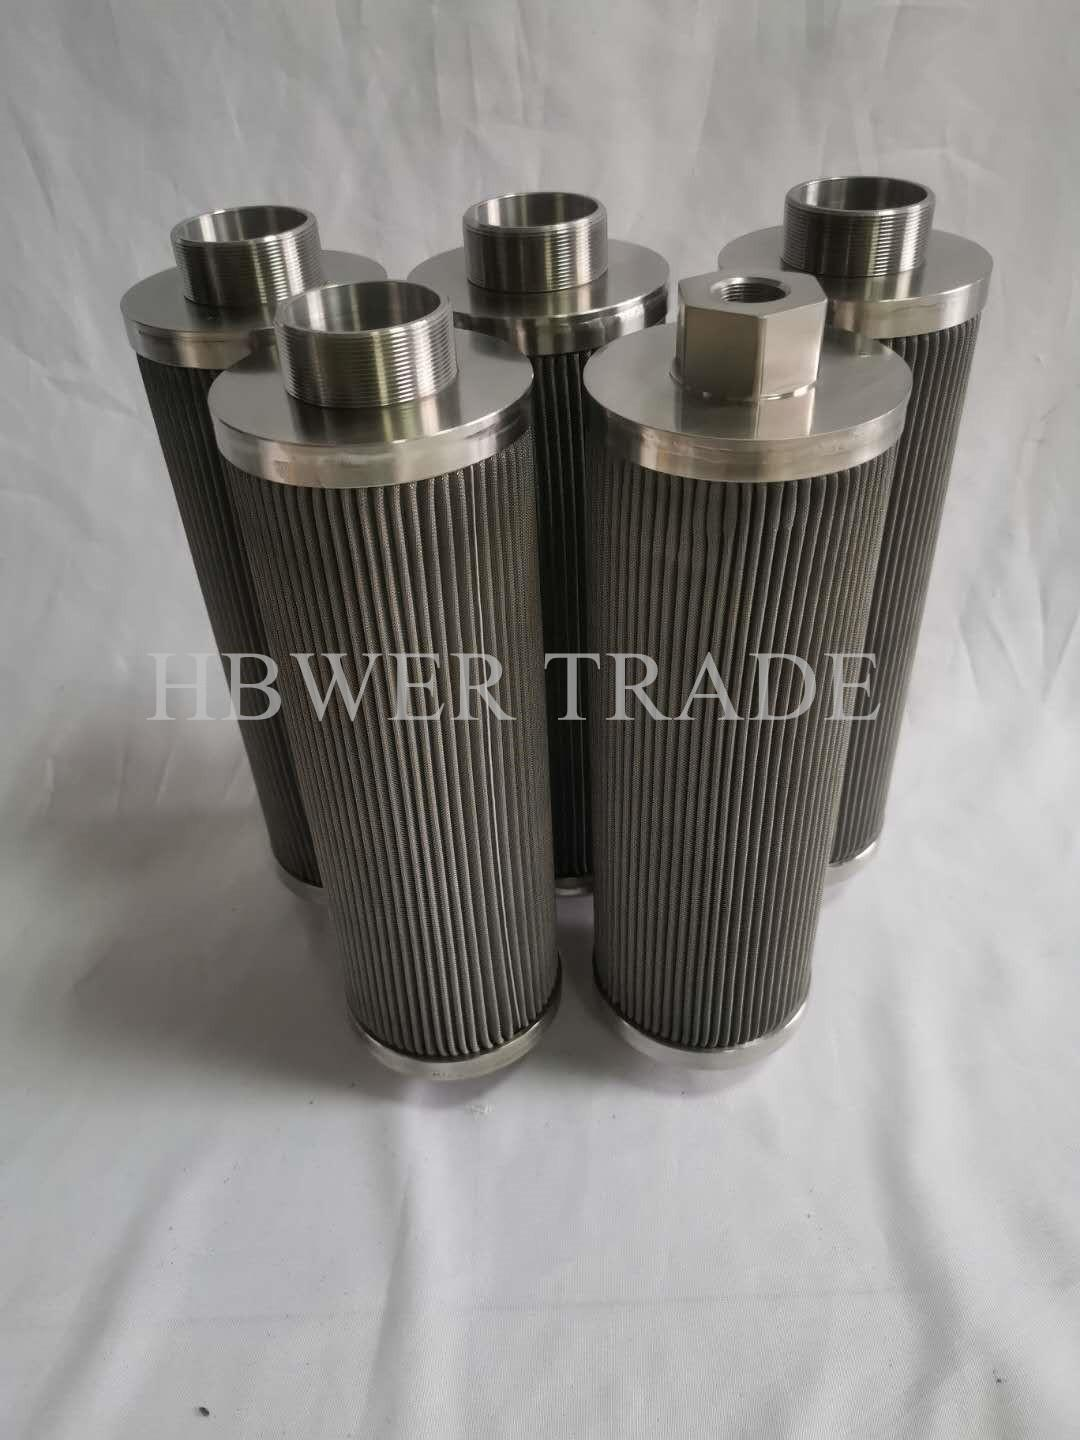 Internal threaded stainless steel filter element 316 304 material stainless stee 5